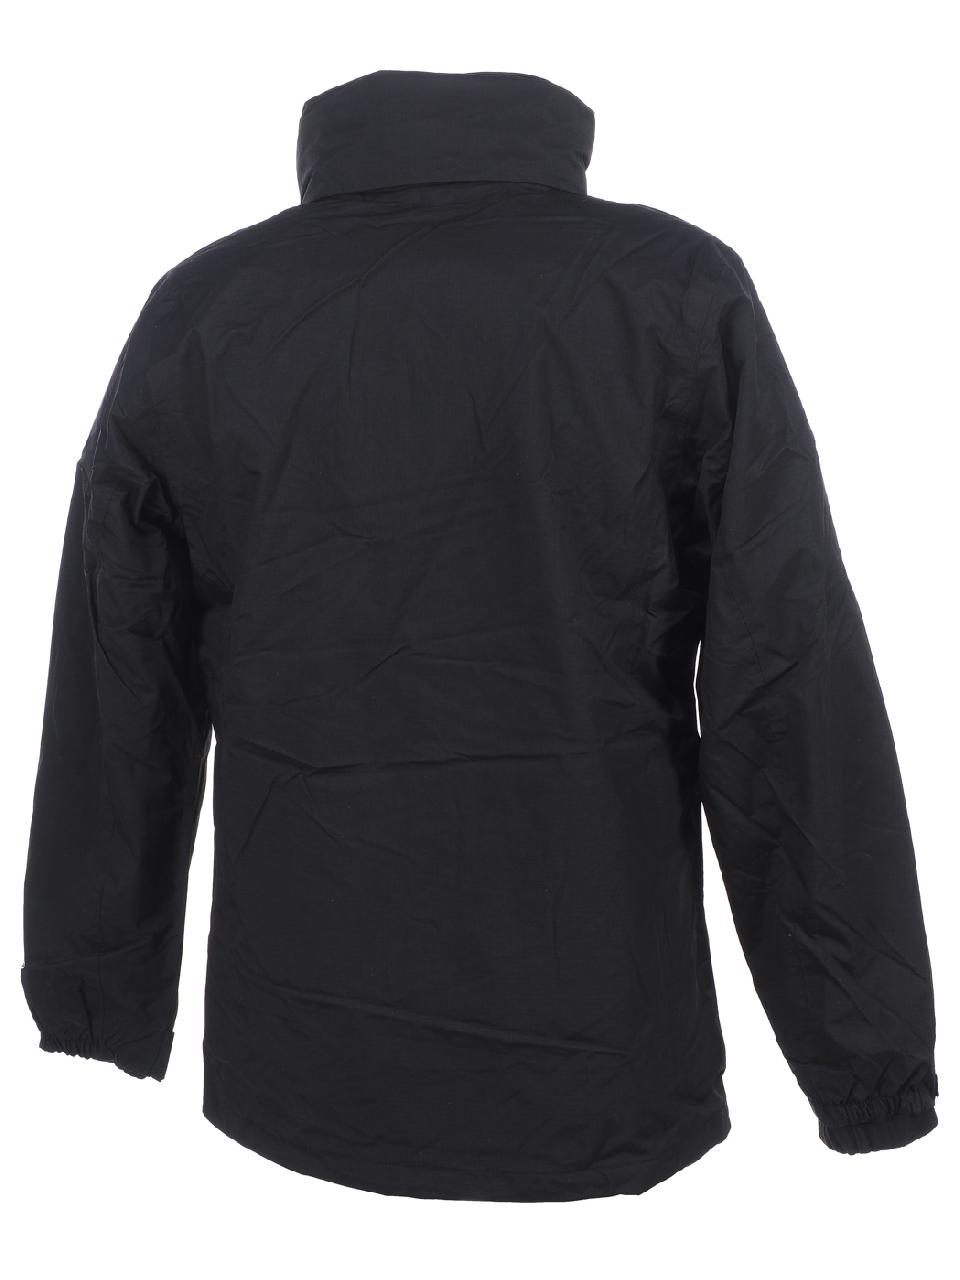 Jackets-3-in-1-Columbia-Mission-Air-Black-Black-41300-New thumbnail 5